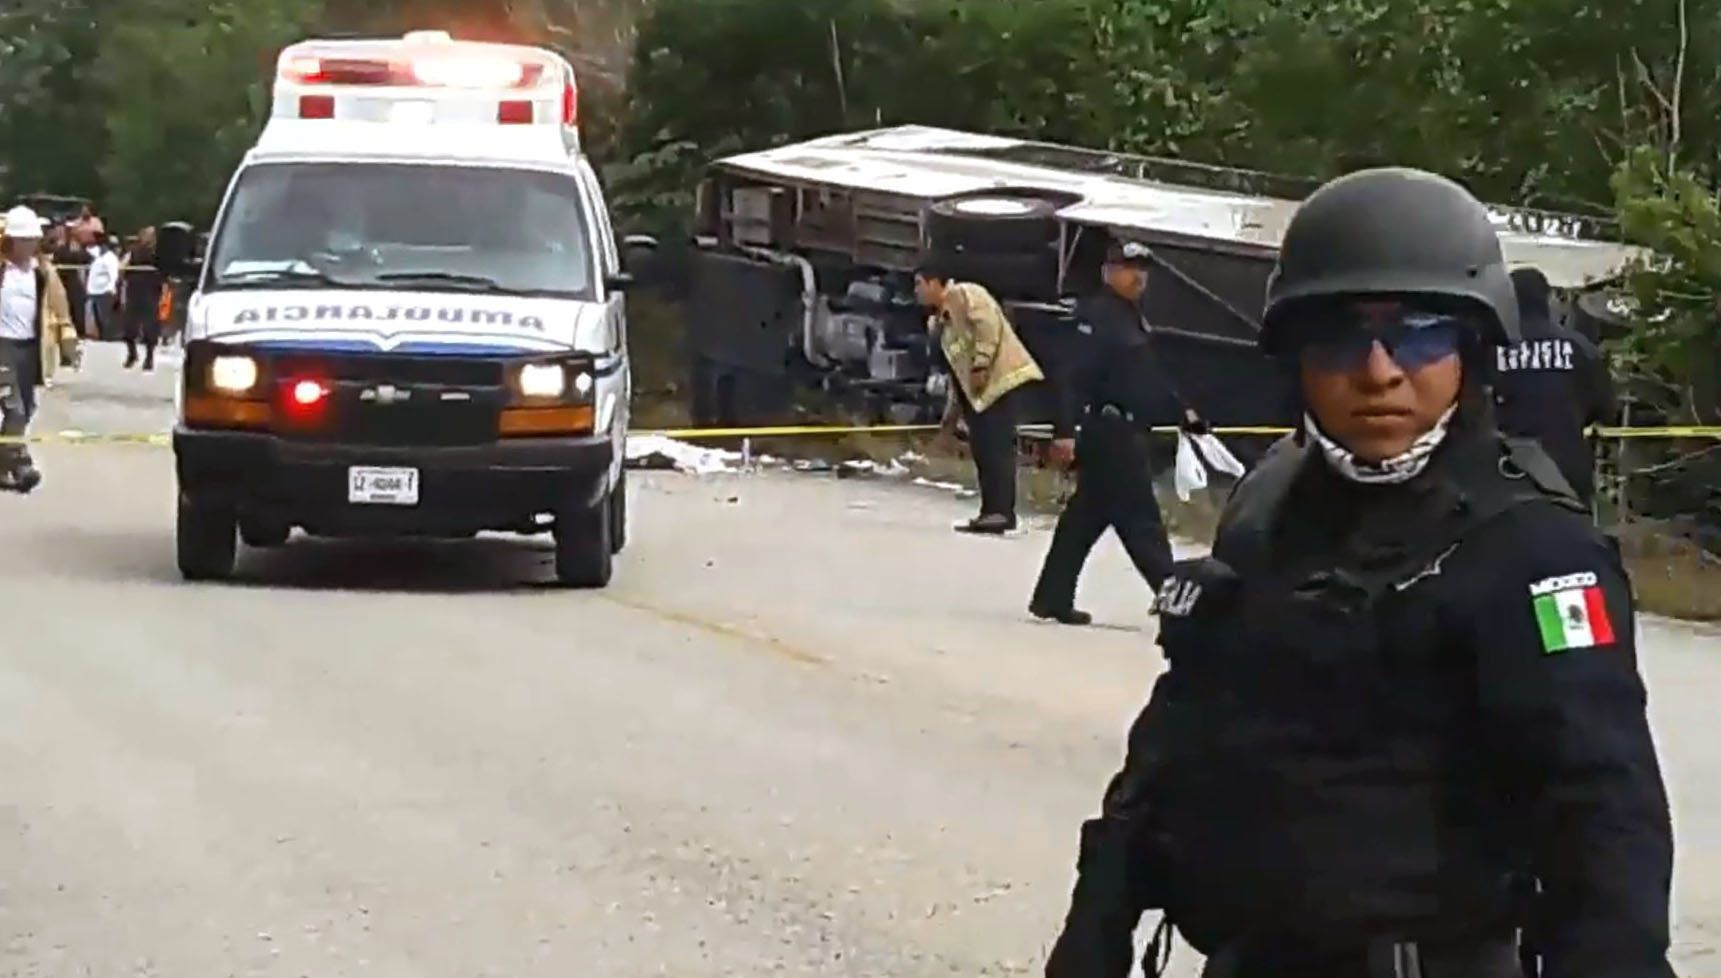 Bus Crash in Mexico Kills 12, Including 7 American Tourists